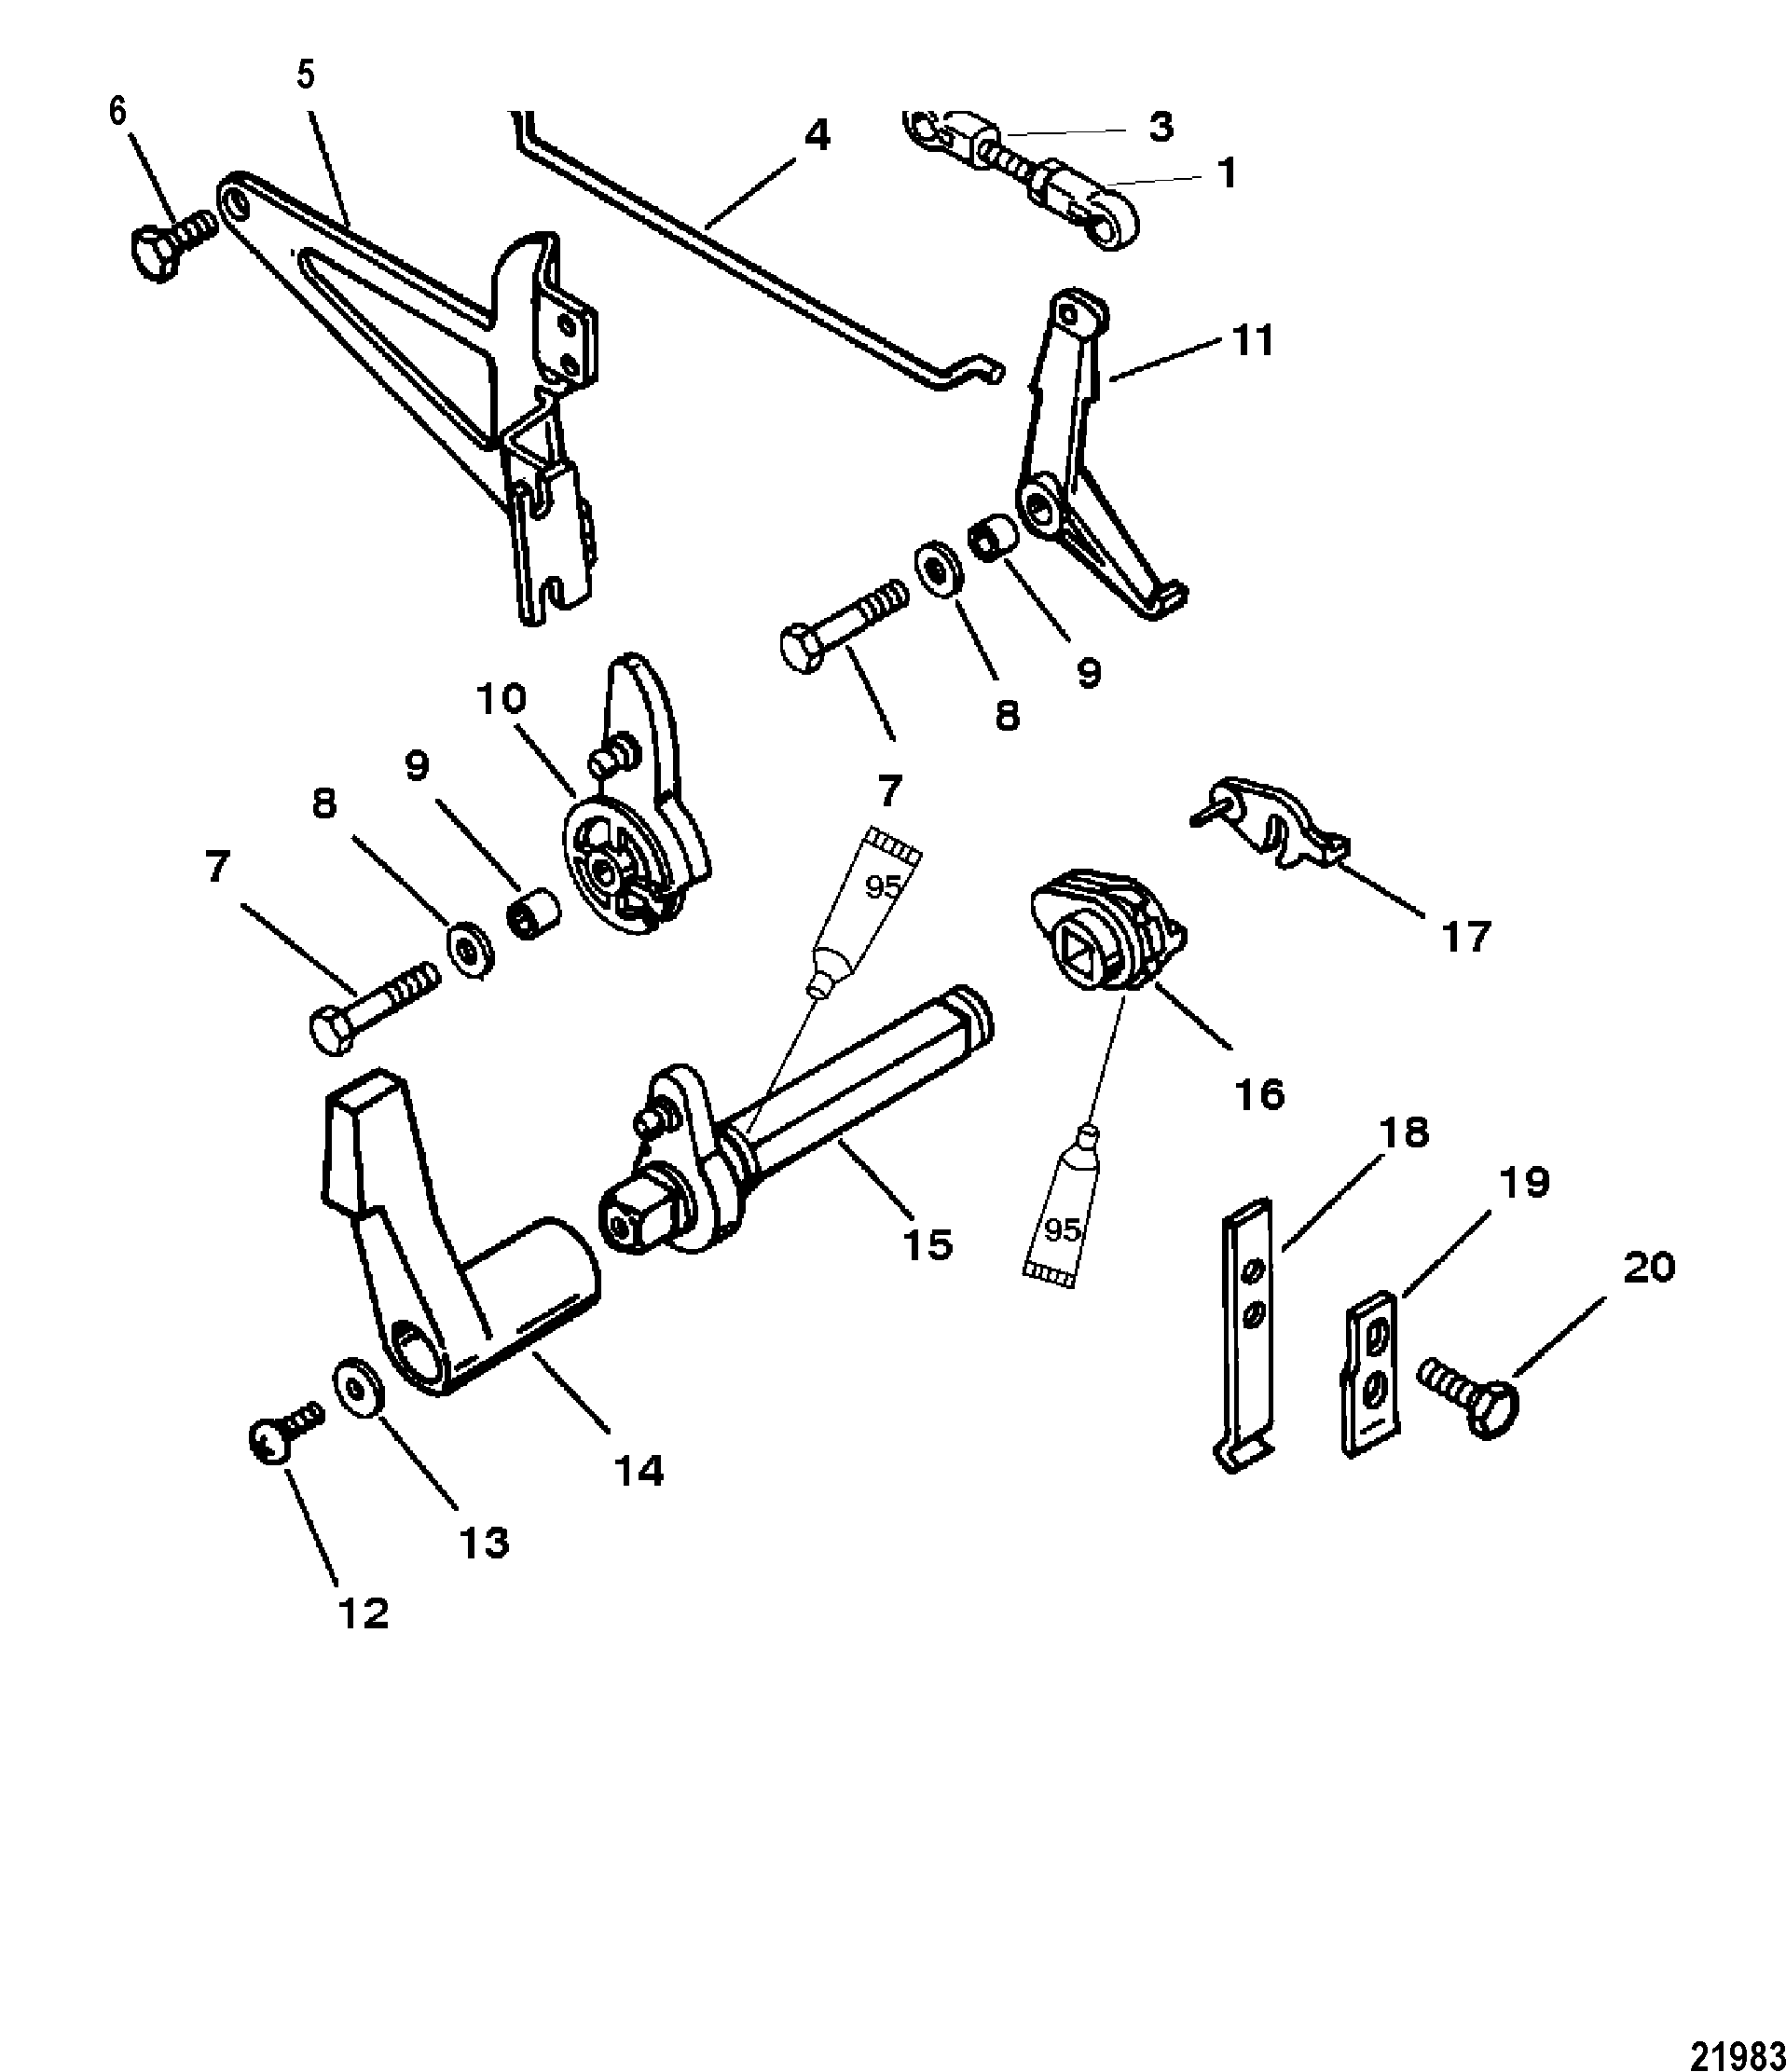 Throttle and Shift Linkage FOR MARINER / MERCURY SEA PRO